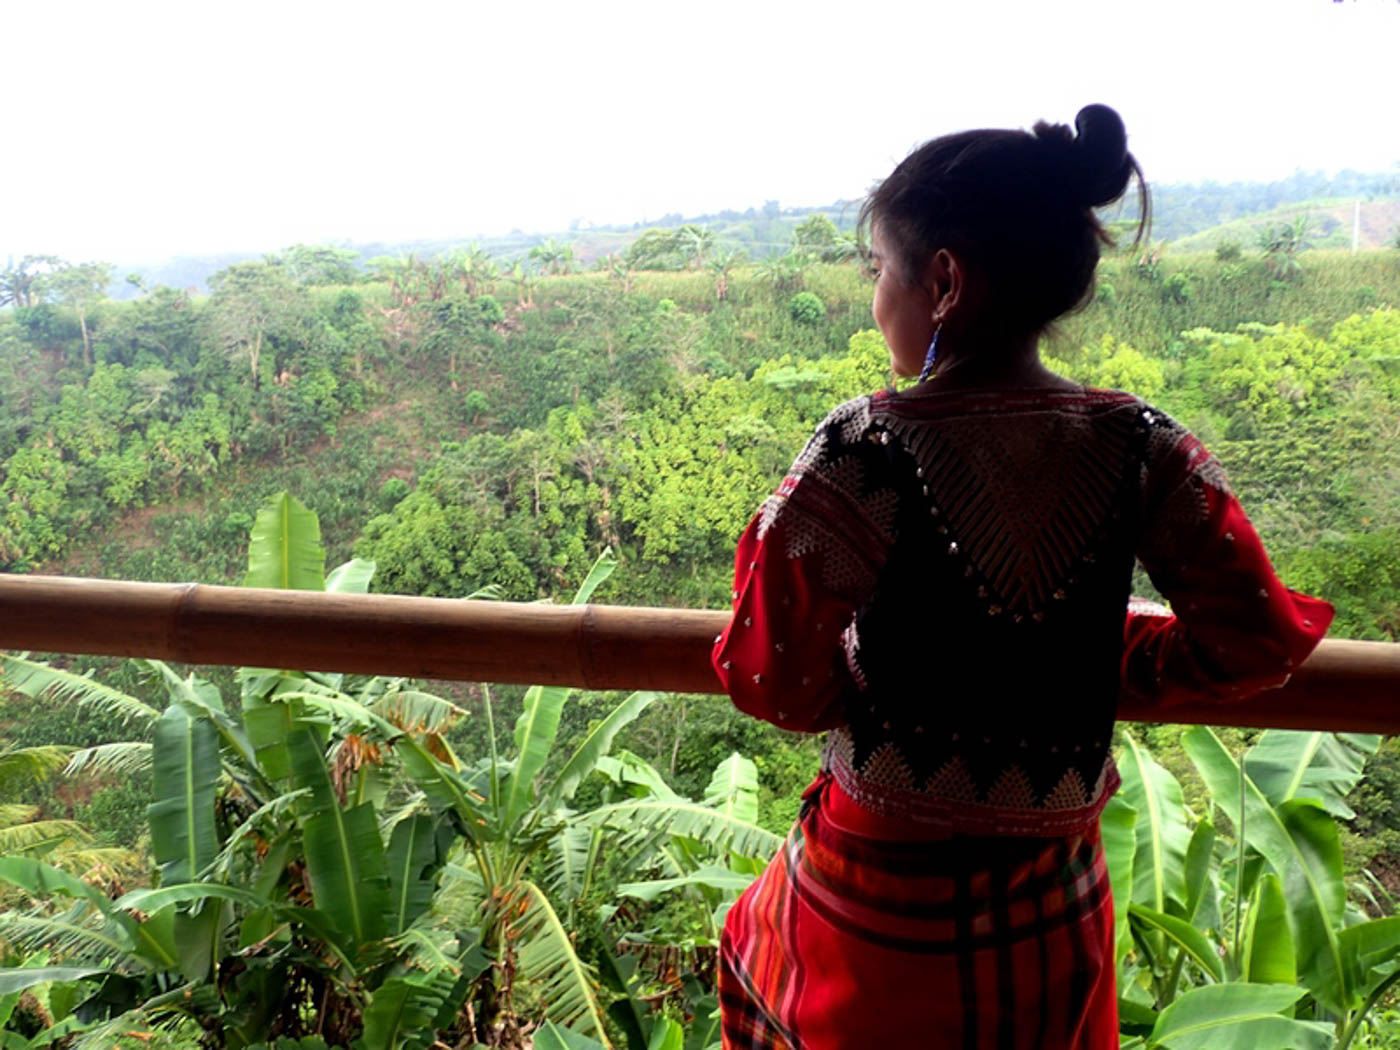 NATURE VIEW. The village has a panoramic view of lush forest, with mountains visible during clear days.